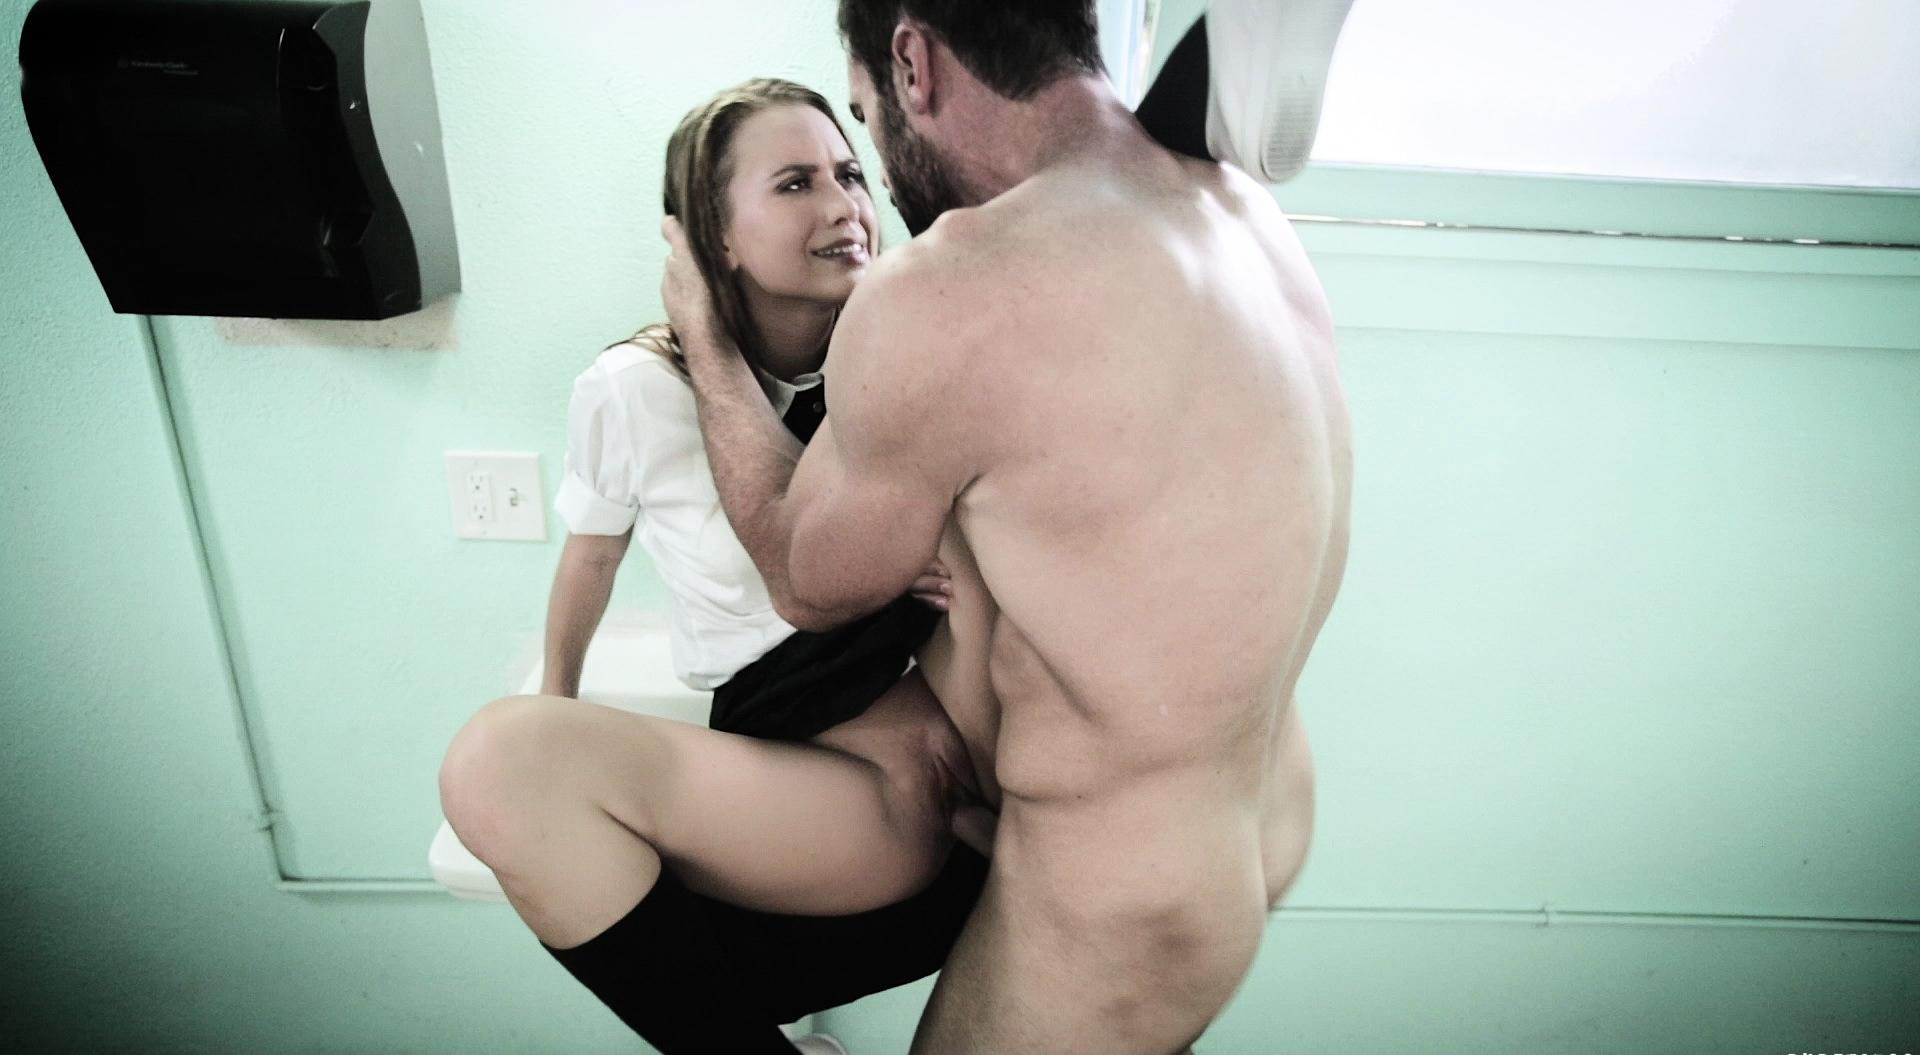 shes half his age but she enjoys to get fucked by him the hard way picture 11